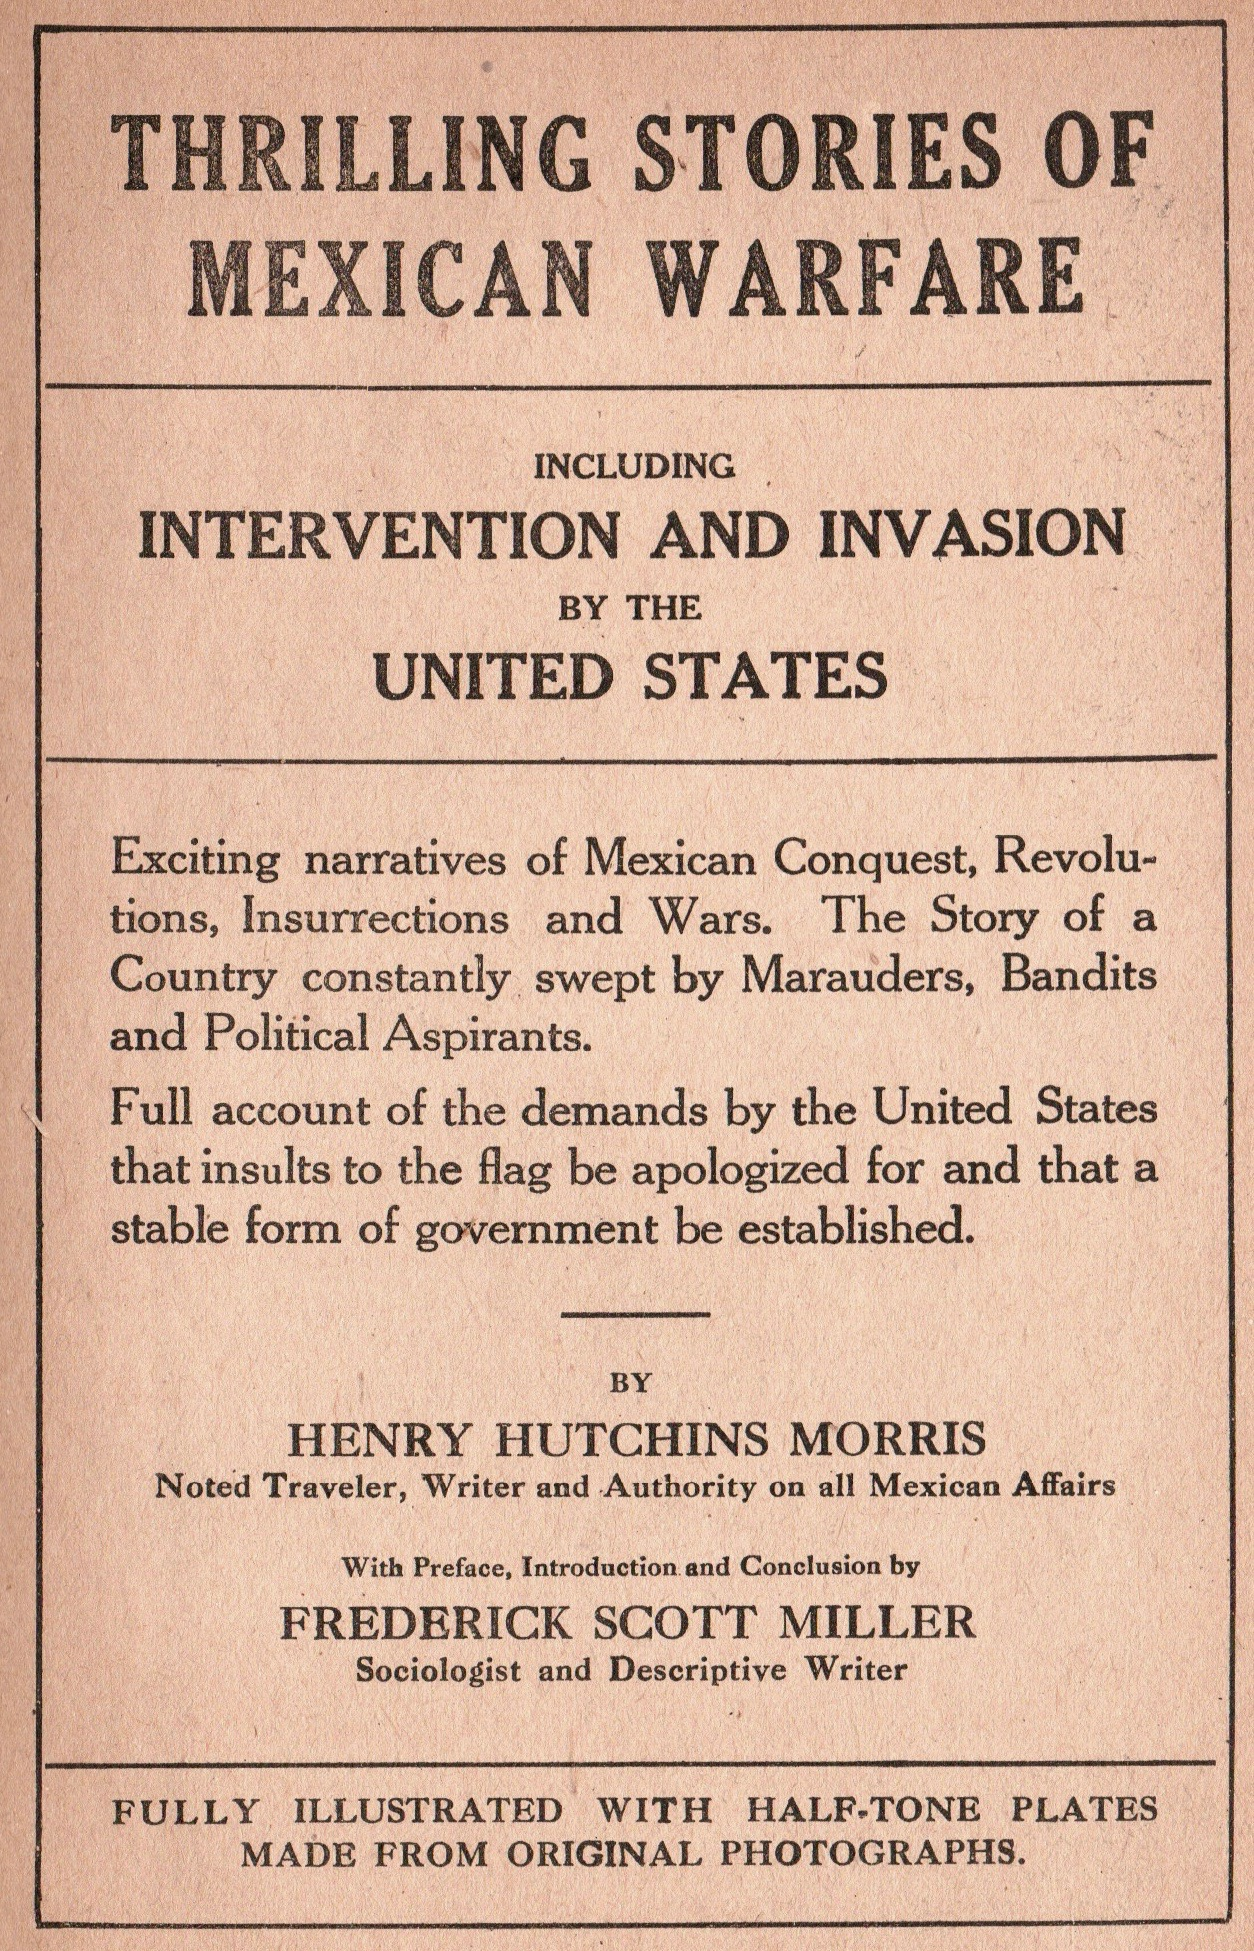 Thrilling Stories of Mexican Warfare Title Page.jpeg